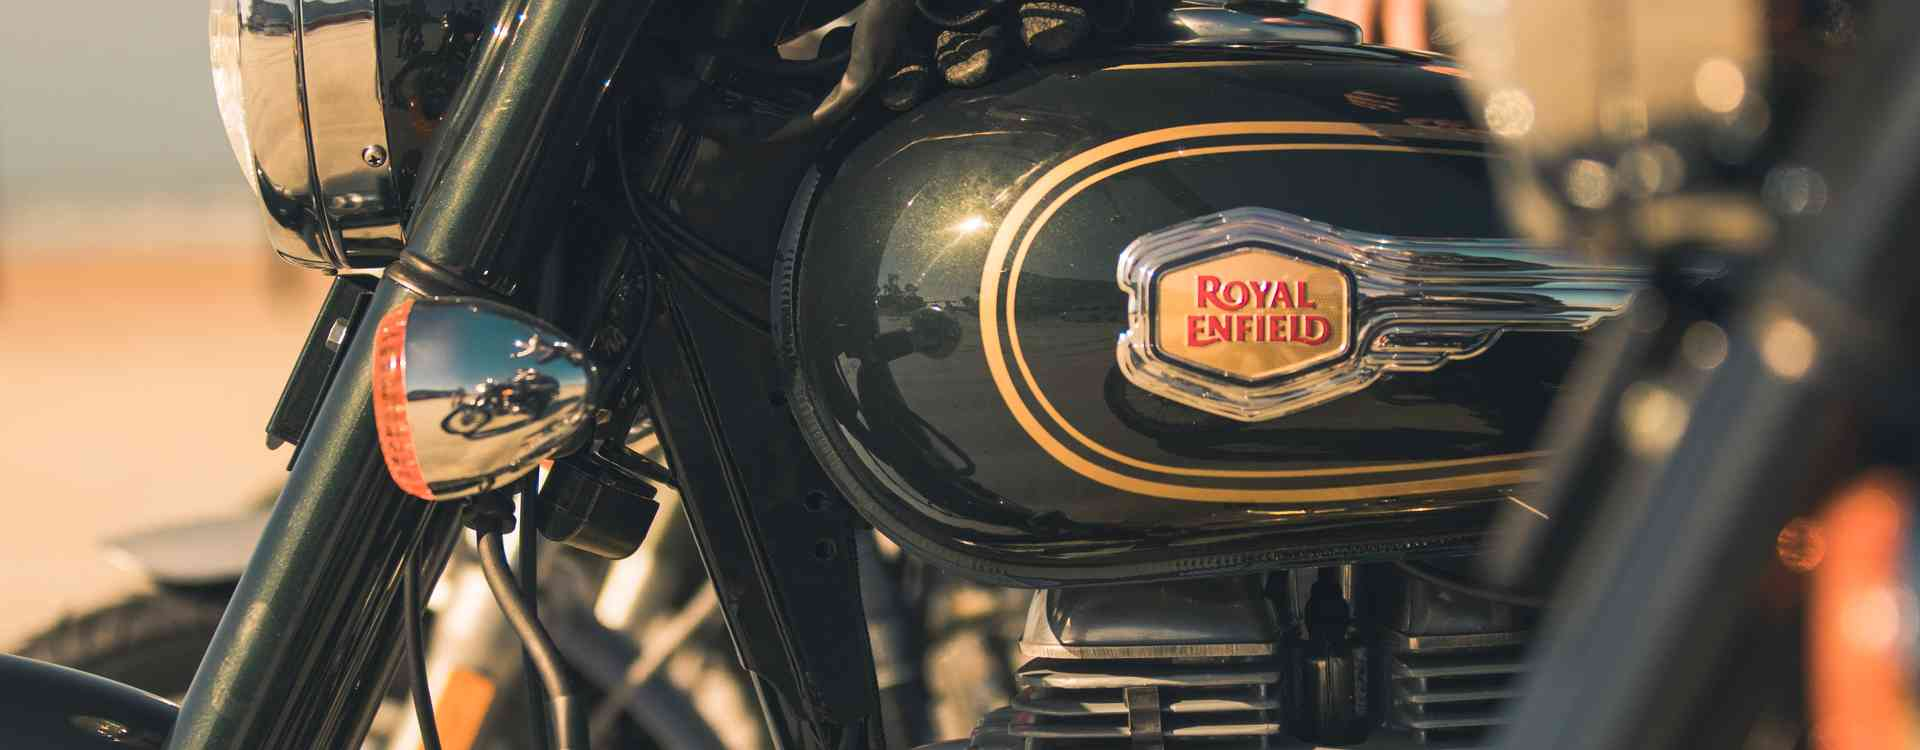 Bullet 500-Reliability on the Road